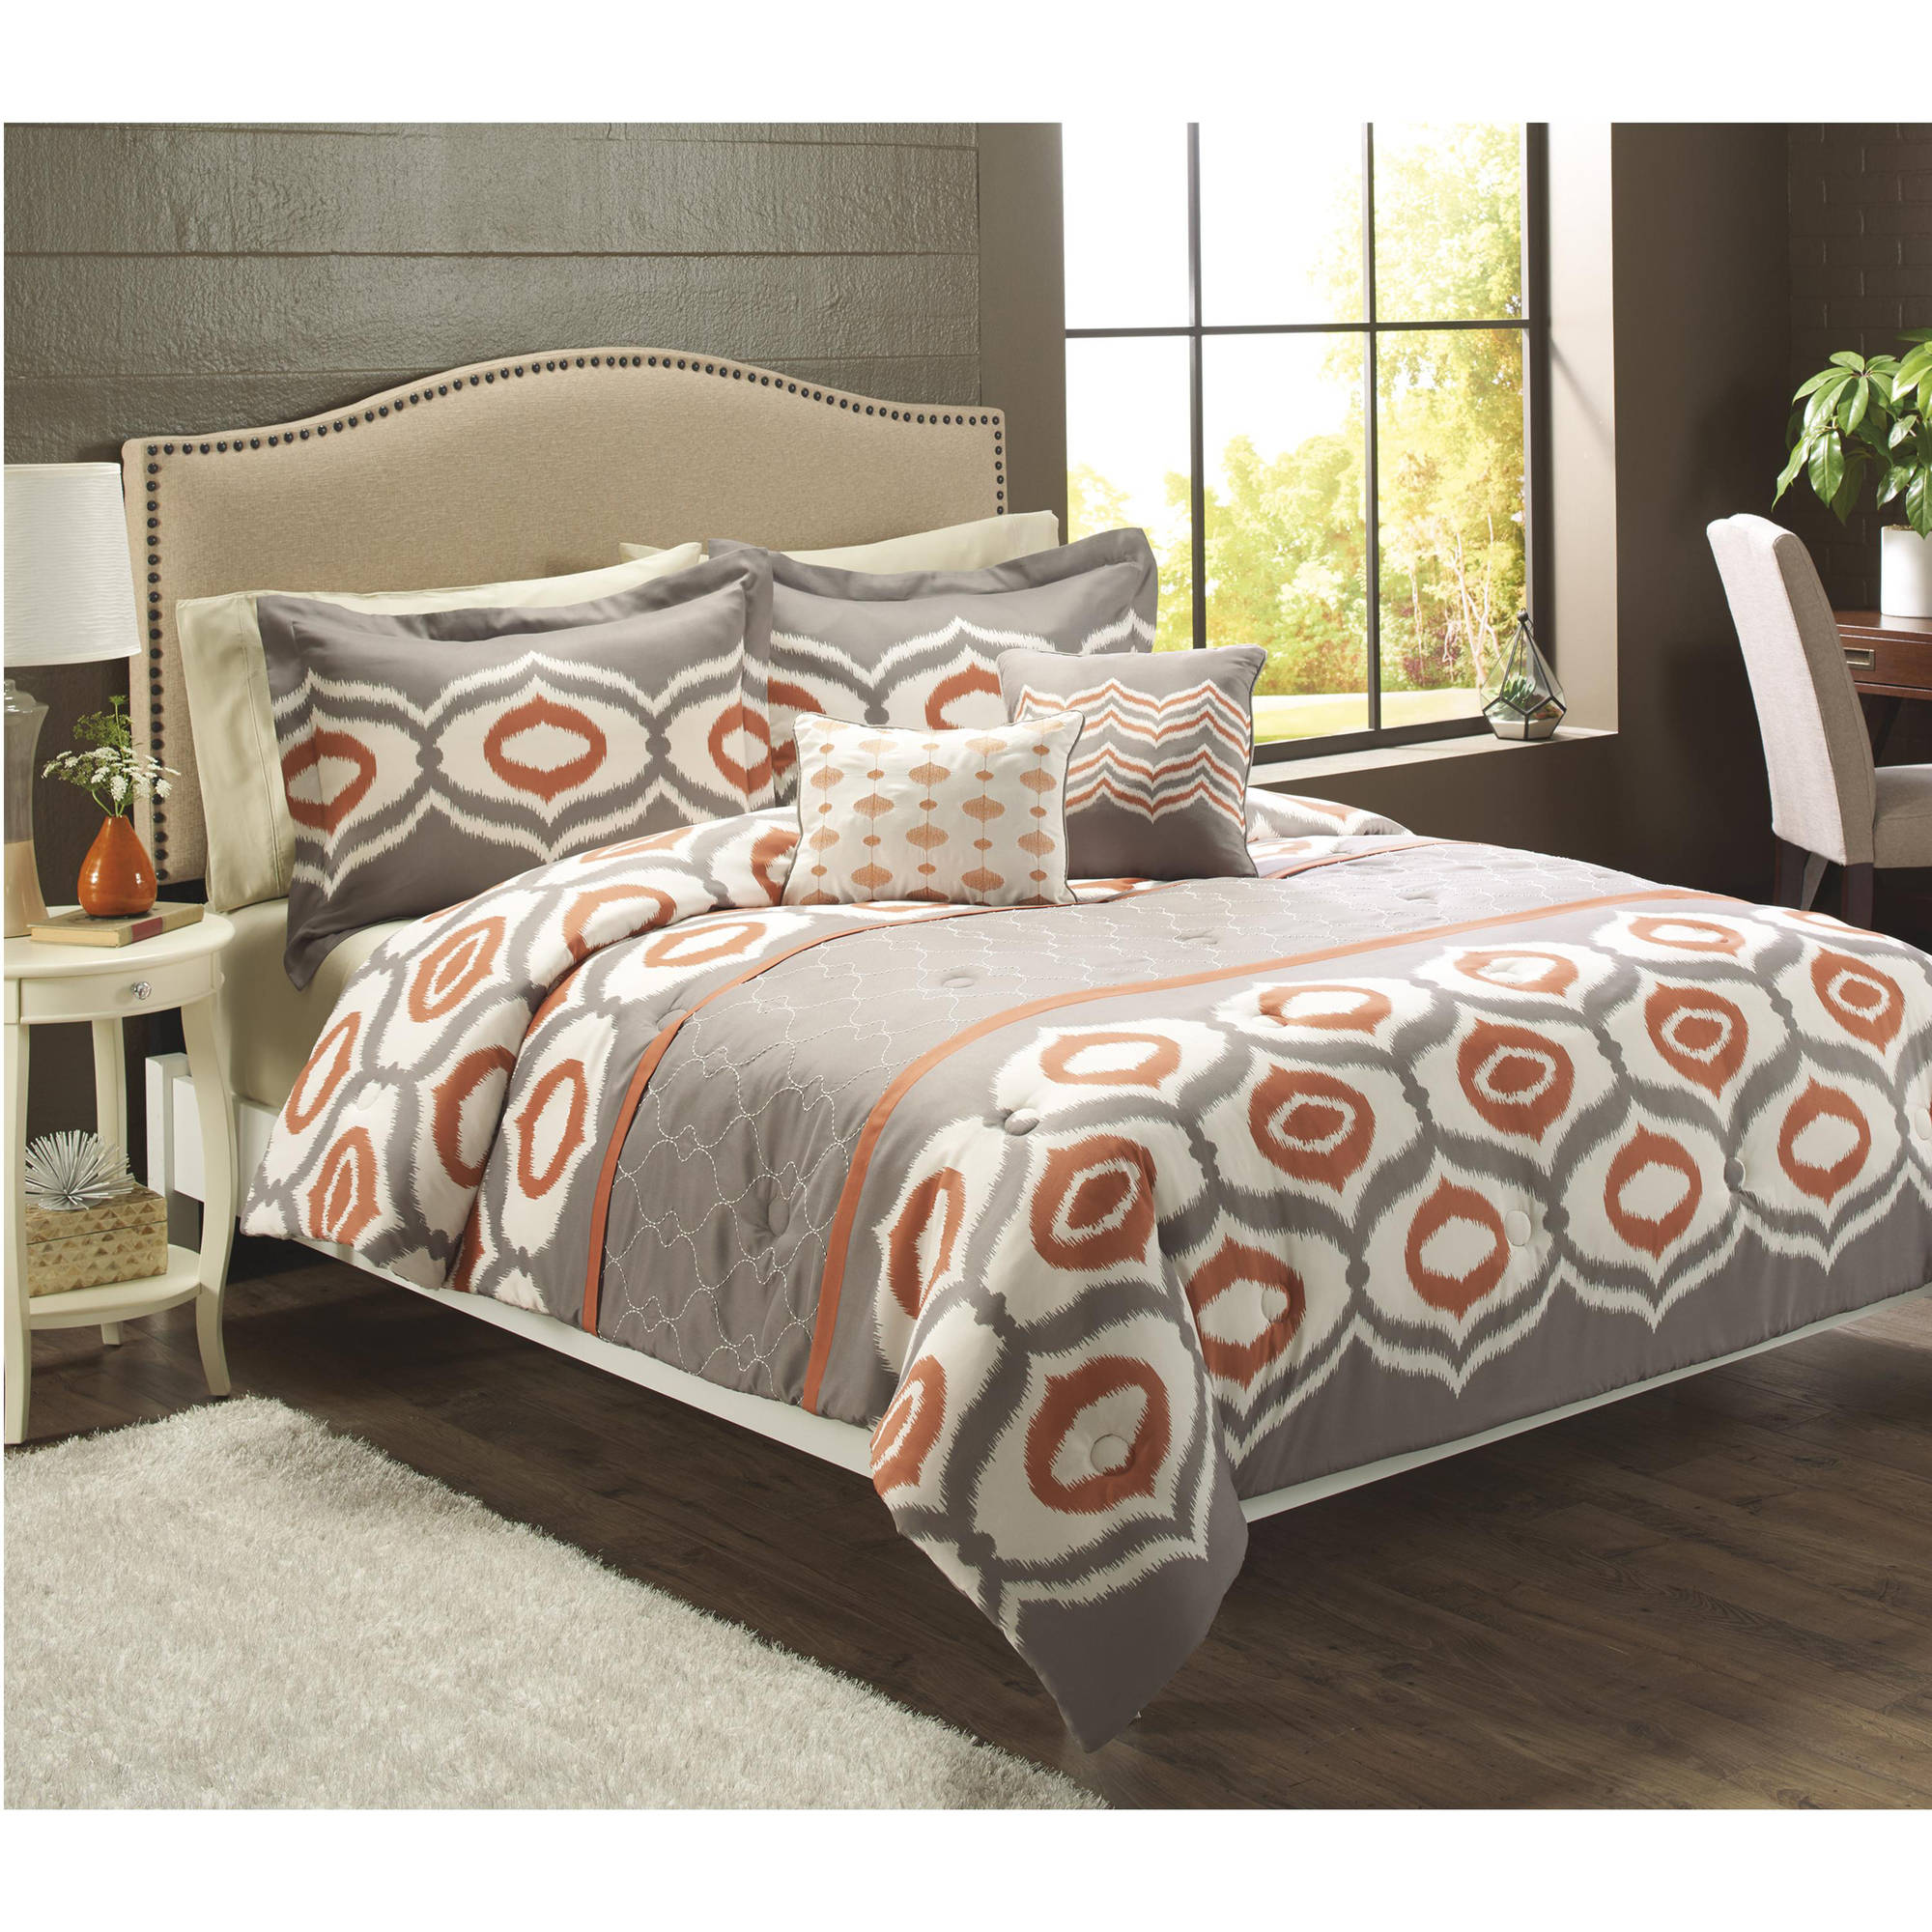 Better Homes and Gardens Ikat Trellis 5-Piece Bedding Set